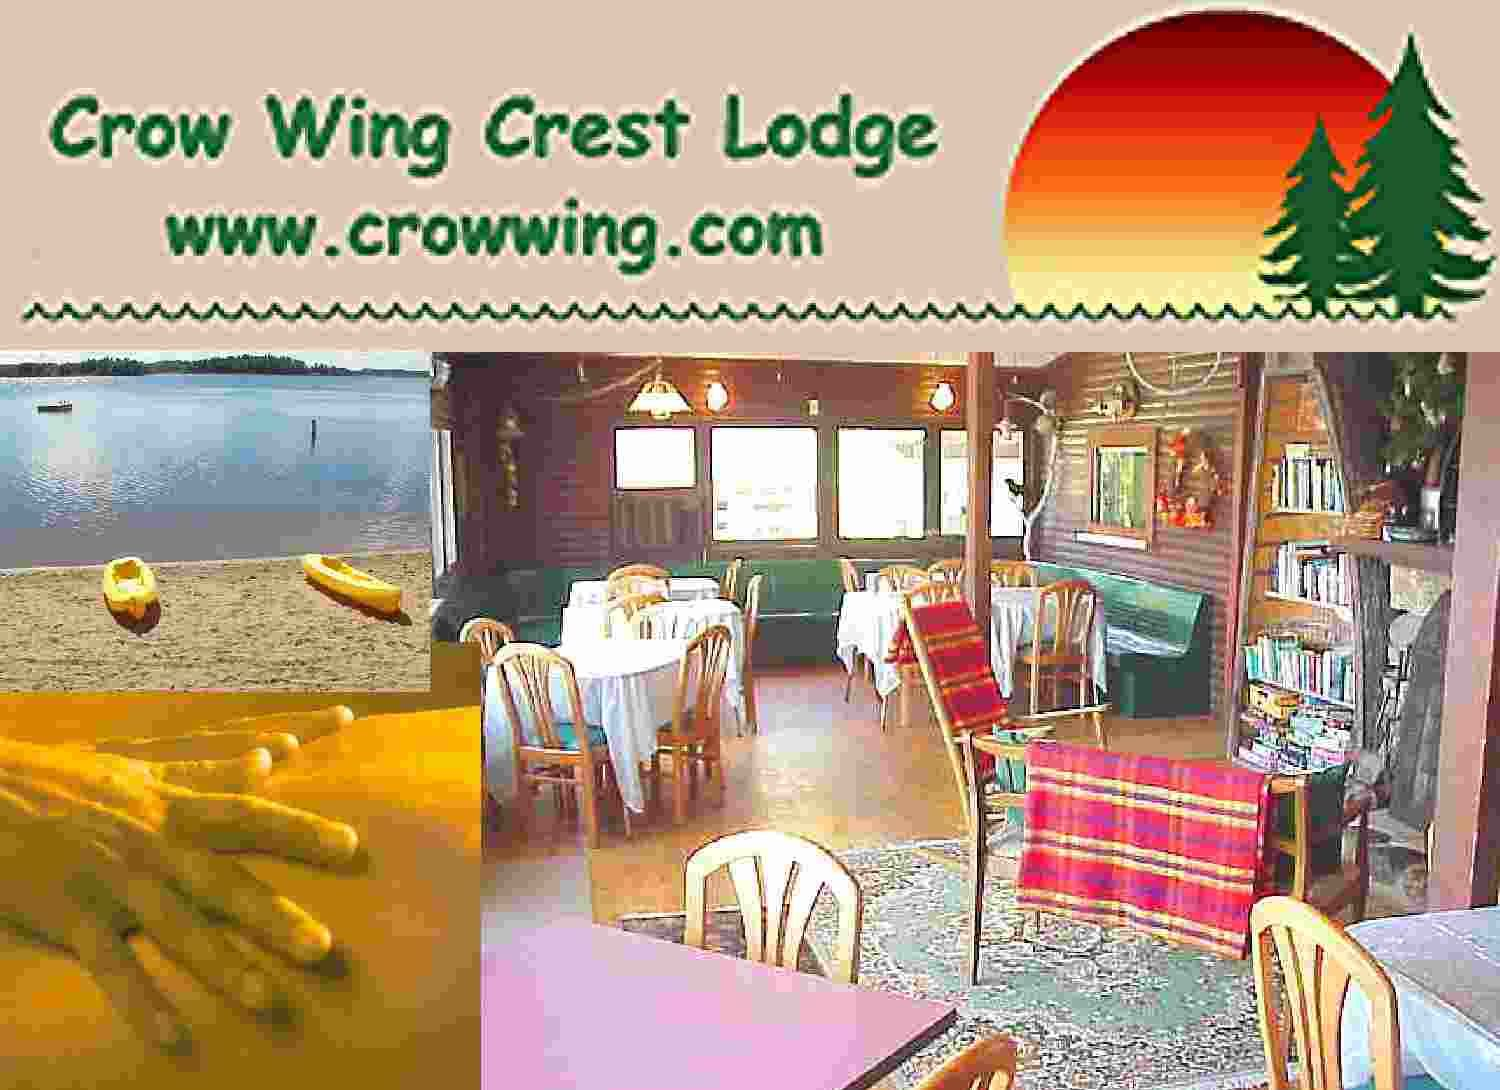 Crow Wing Crest Lodge, a fun family vacation resort in northern MN, with 19 cabins, 2 campsites and historic lodge. Fishin', Reflexology, Drum Circles, Big Beach and Kids Activites . . .